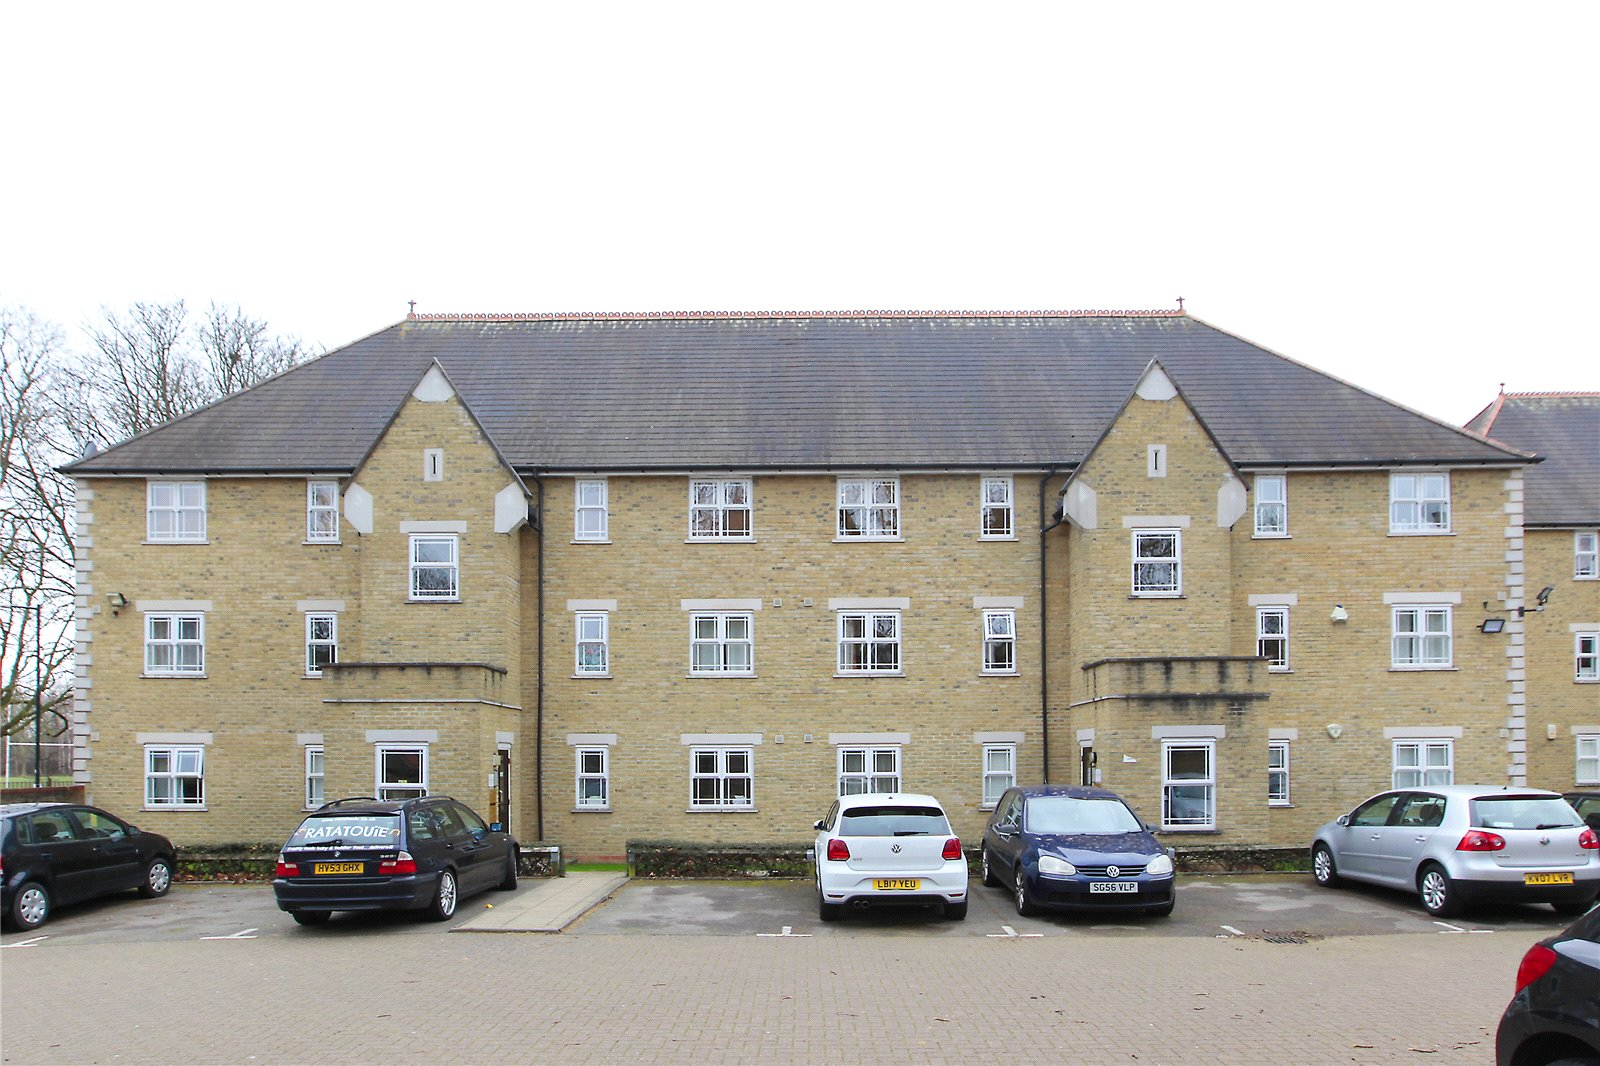 2 Bedrooms Flat for sale in John Archer Way, Wandsworth Common, London, SW18